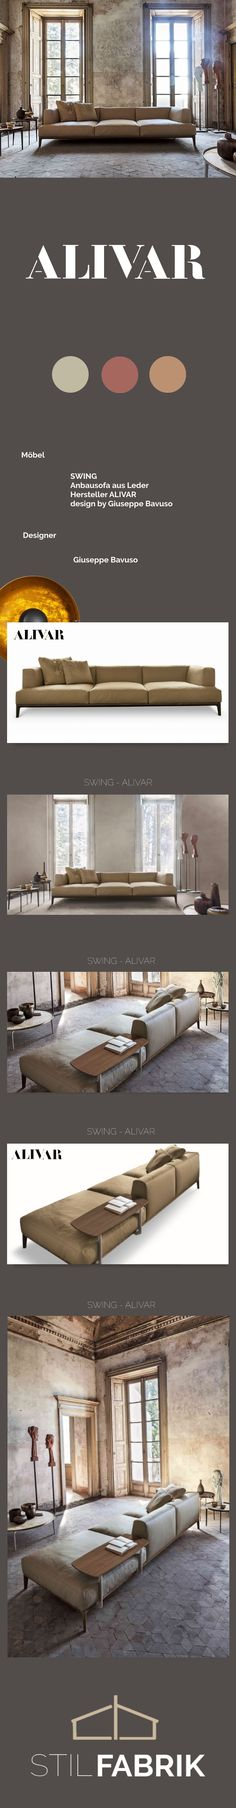 Handmade Sofa From The New Croatian Brand Prostoria Super Soft Corners And Sit Comfort Like On A Cloud Make Name Real